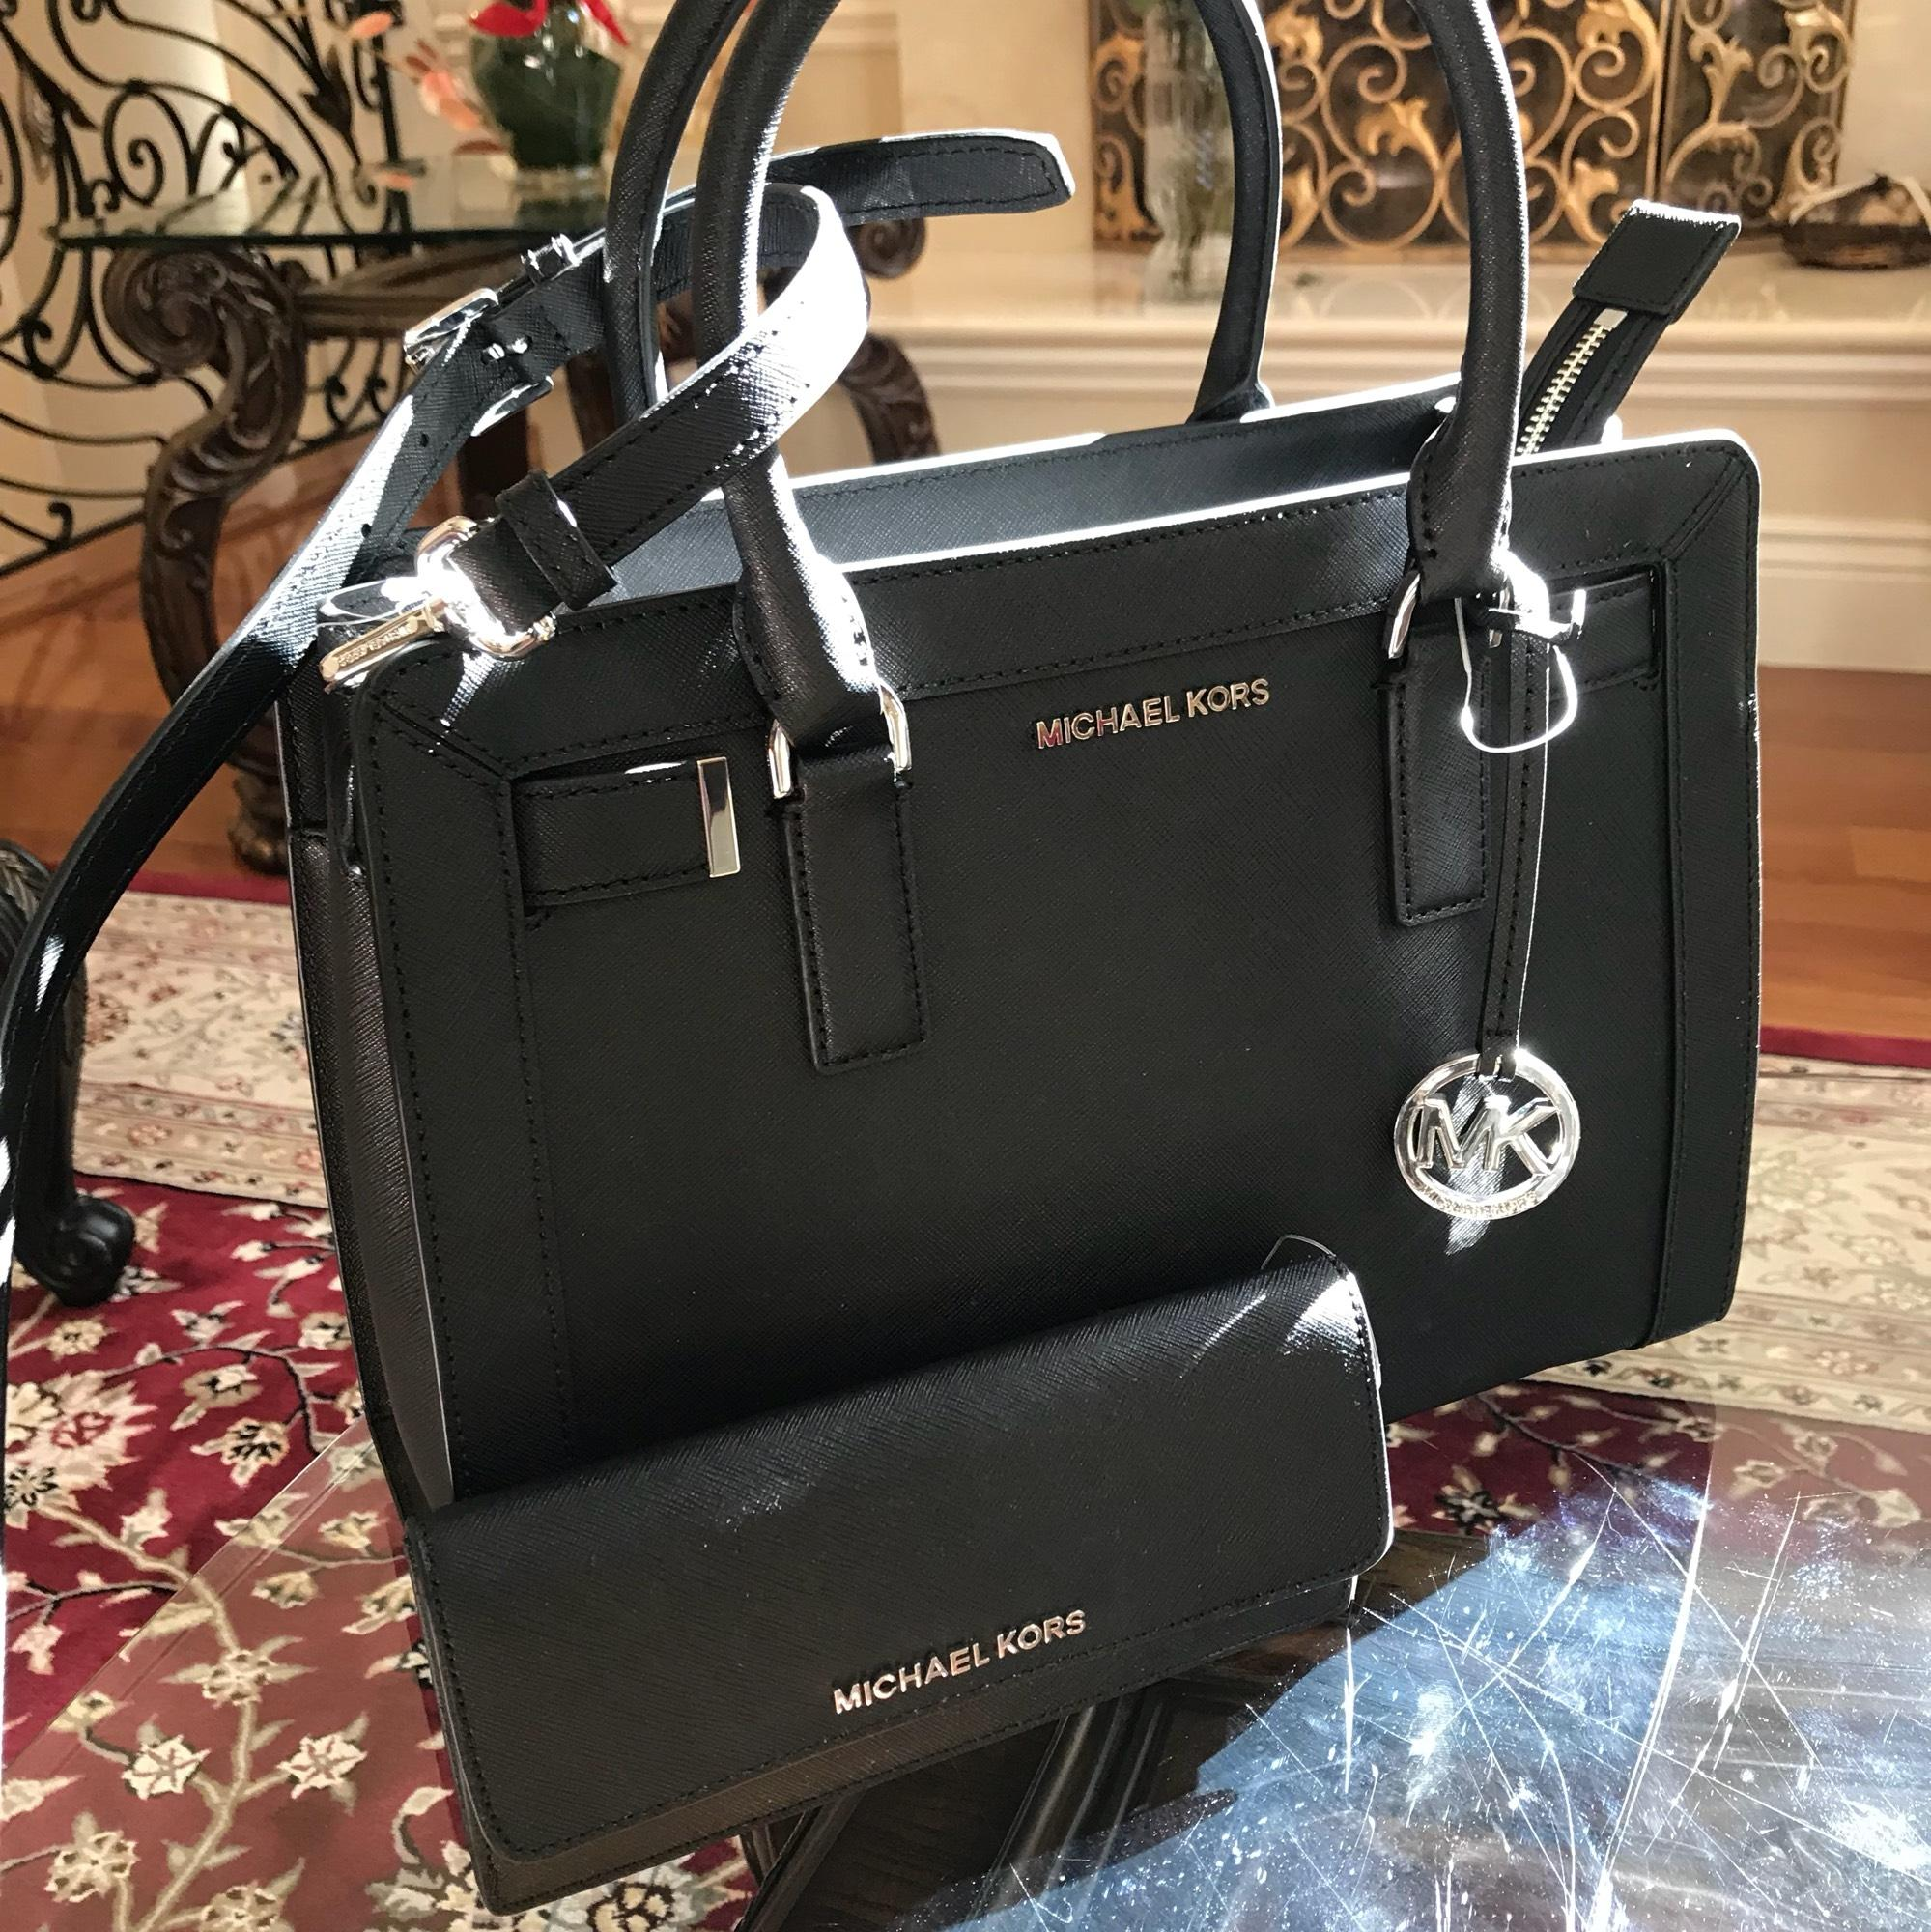 ddeab5b1a023 ... sale michael kors dillon crossbody strap electric blue medium leather  satchel in black. 12345678910 030de